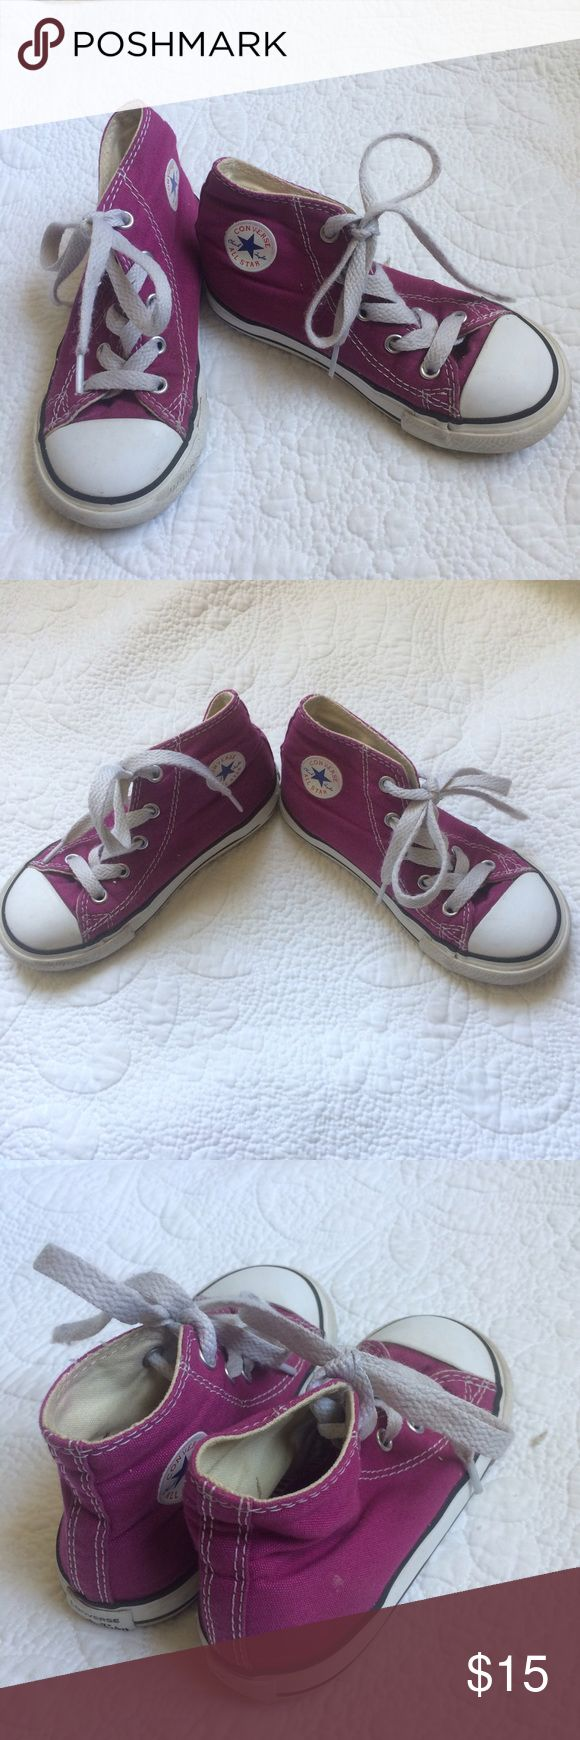 Converse Classic Chuck Taylor Pink Hi Top Sneakers - Preloved with tons of playtime left! - Pink Sapphire color. - Scuffs around rubber sole. - Classic staple for your little ones wardrobe! - No Trades Converse Shoes Sneakers